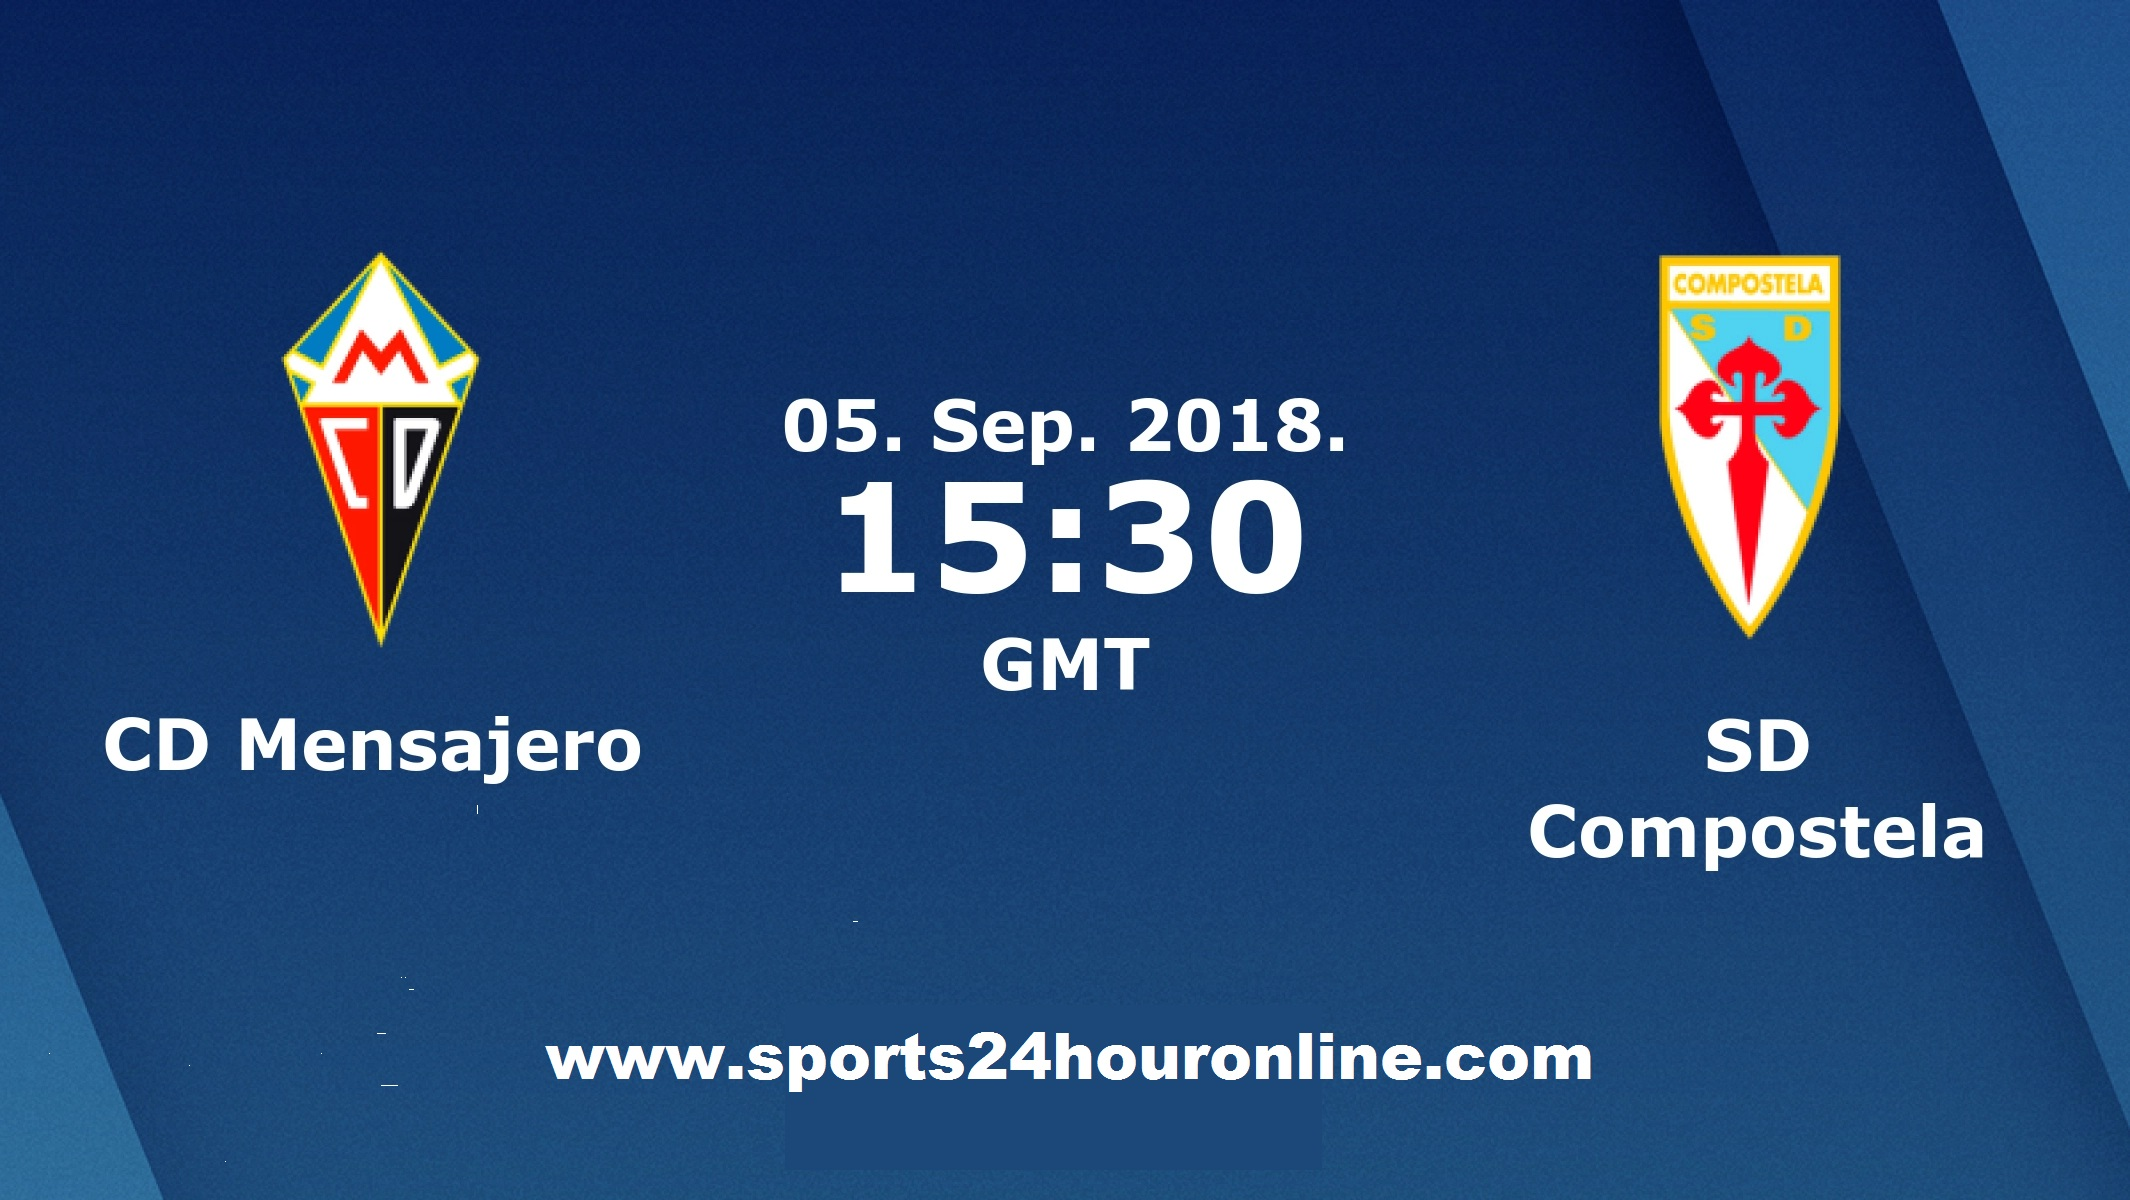 Mensajero vs Compostela Live Streaming Football Match of Copa Del Rey